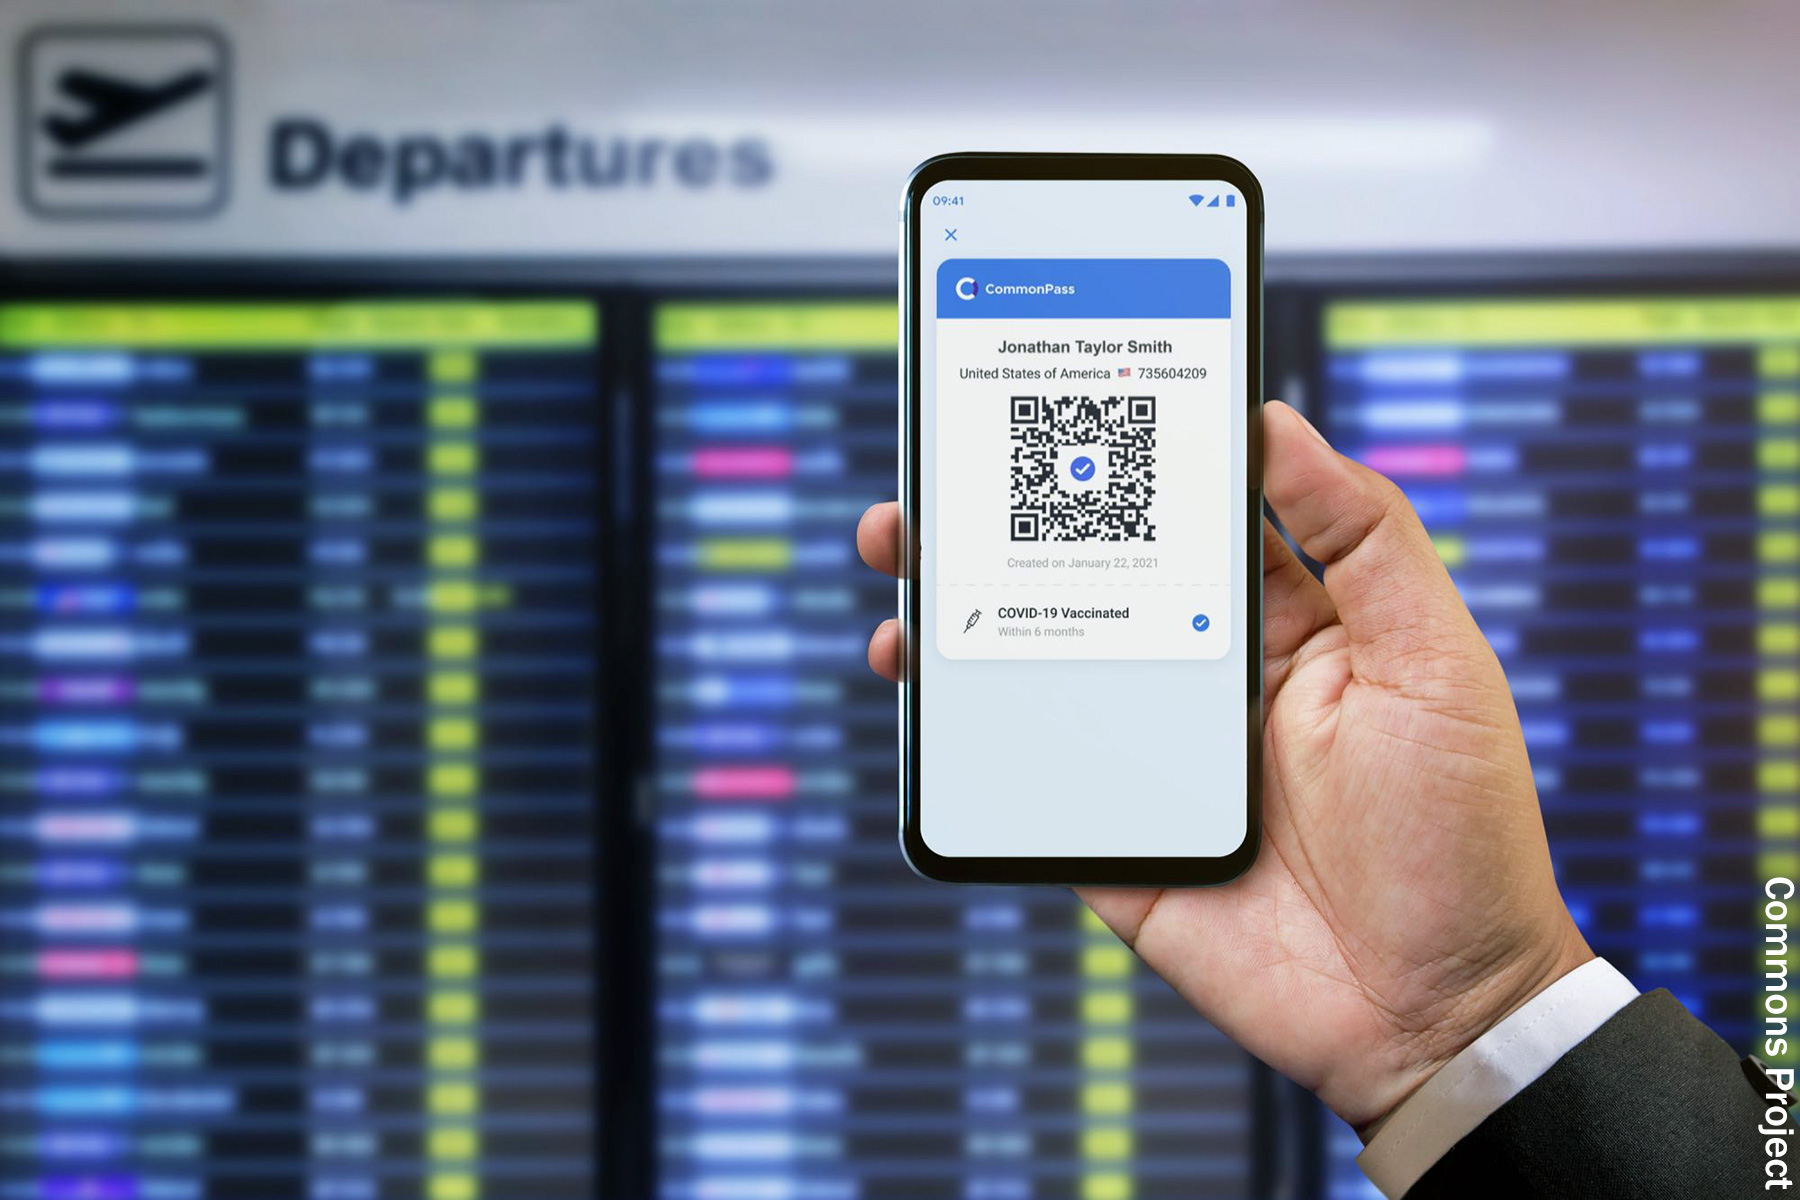 Apps to Let Travelers, Others Show COVID-19 Status